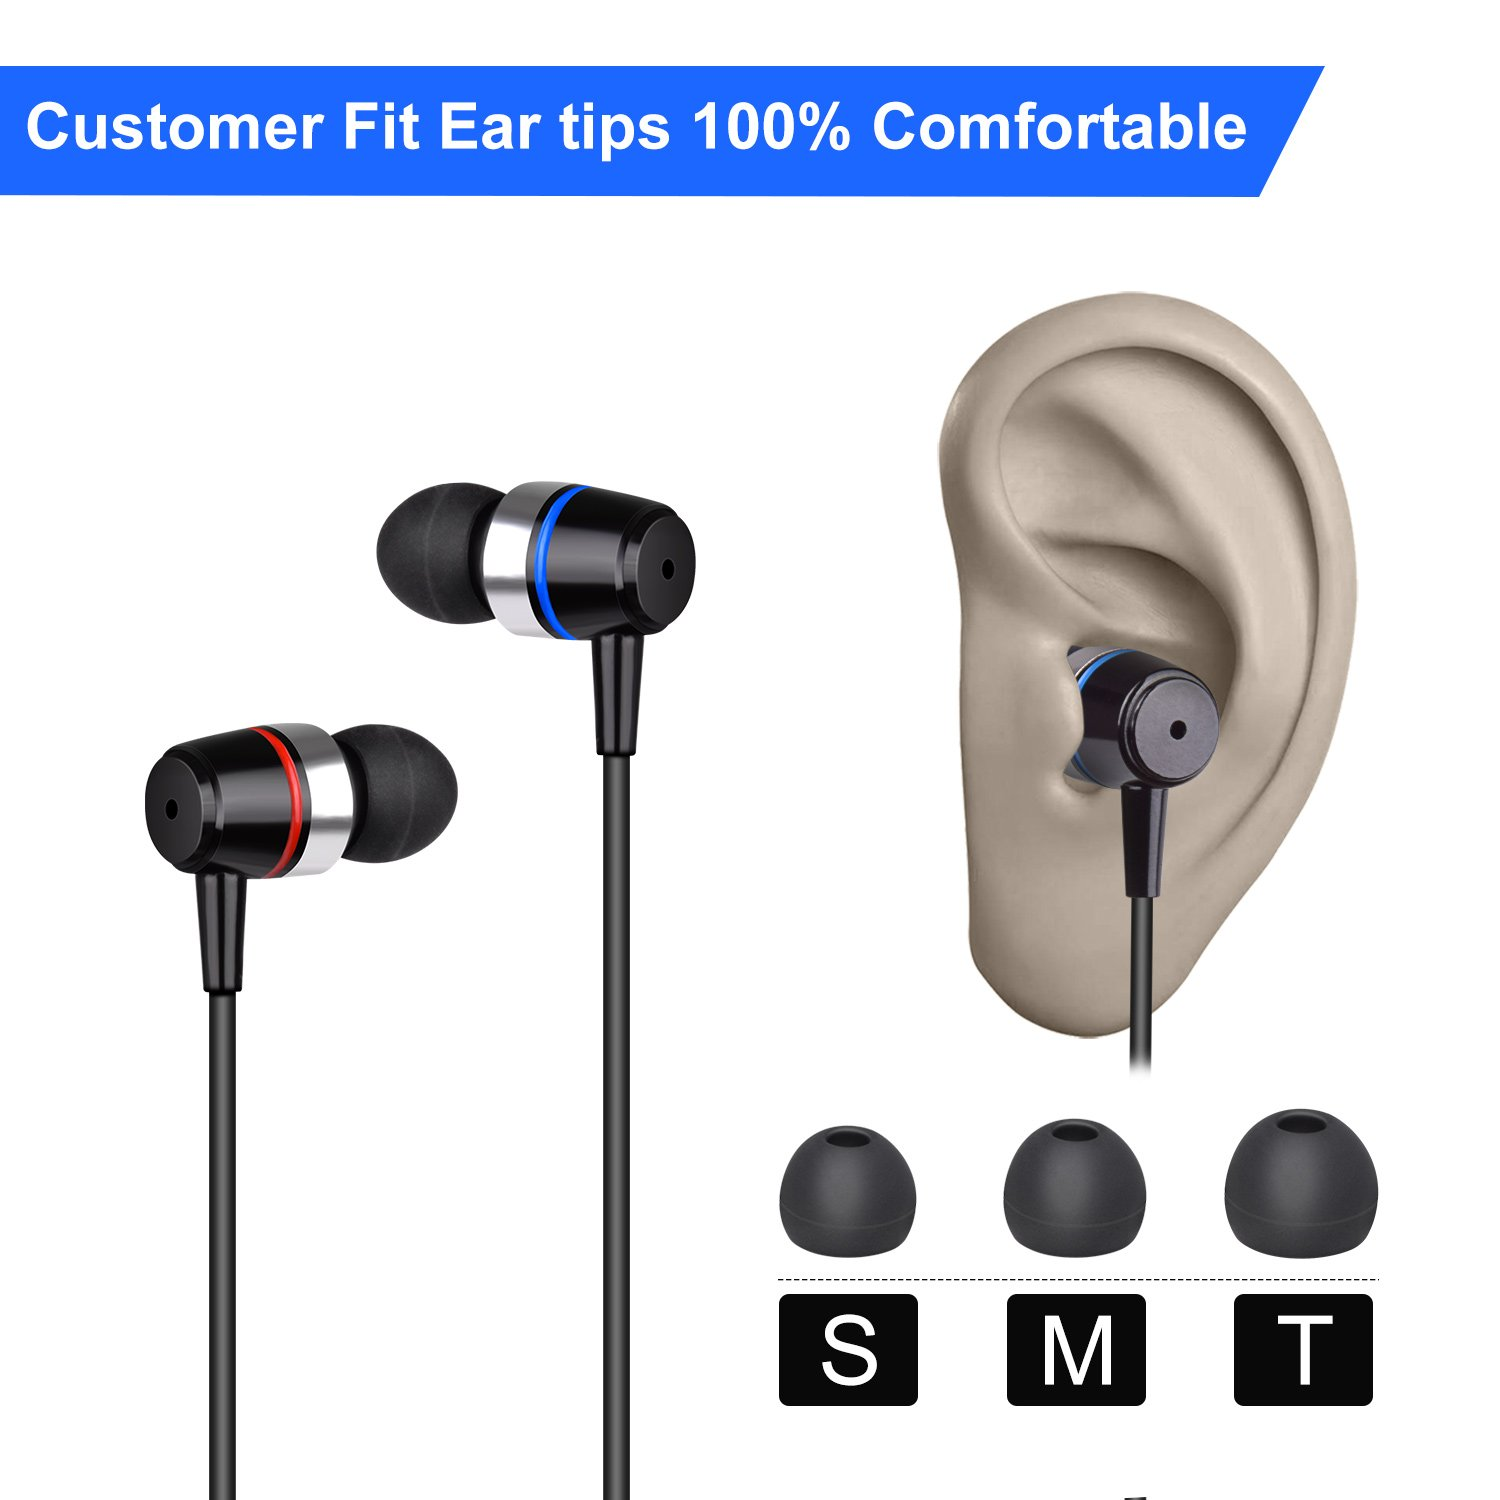 Earbuds Ear Buds Wired Earphones Headphones with Microphone Noise Cancelling Ear Phones Stereo in Ear Headphones Sports Earbuds with Mic and Volume Control Compatible iPhone Android iPad Laptop by TZCER (Image #6)